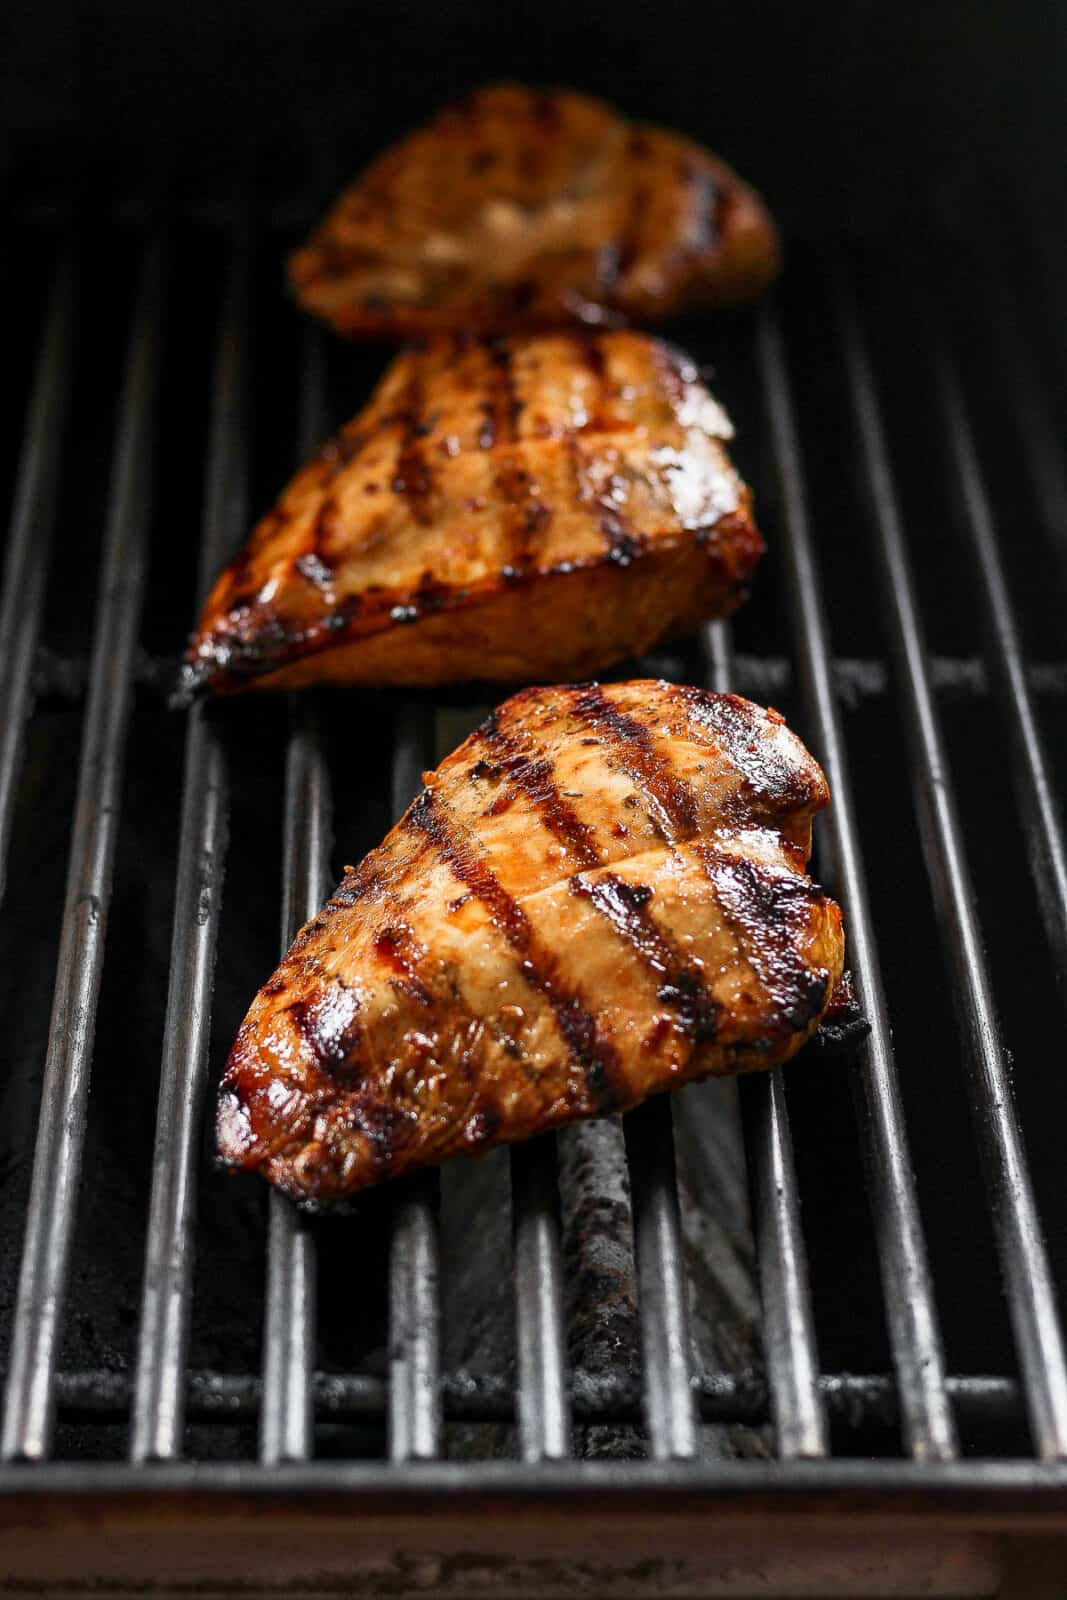 Three chicken breasts on the grill.